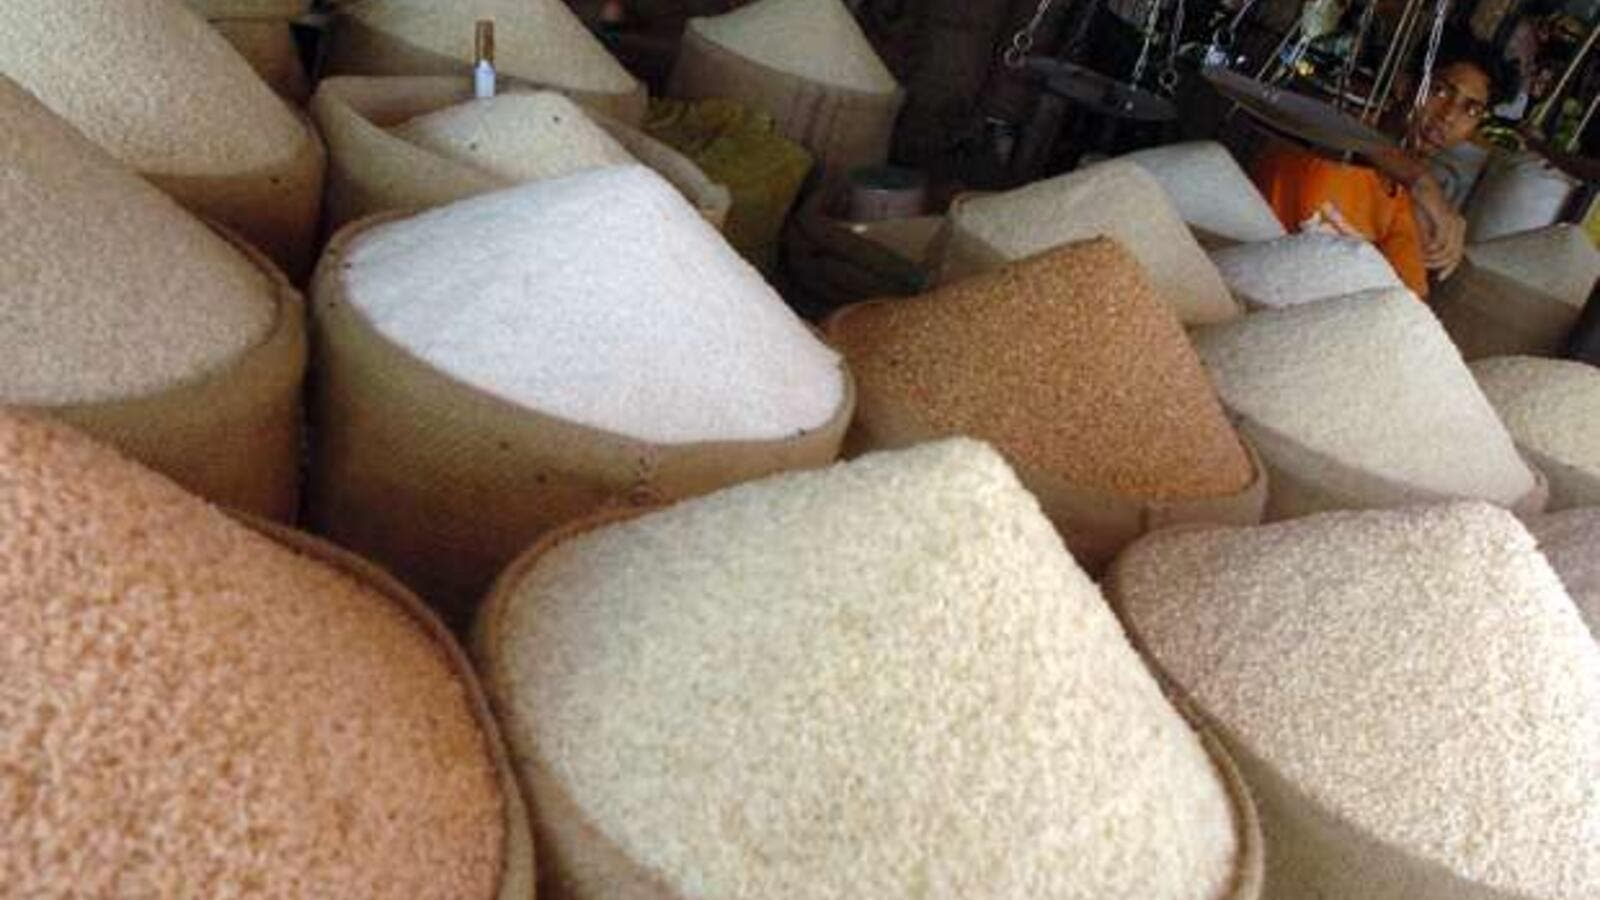 Mecca retailers have been accused of colluding to fix rice prices. (AFP/Farjana Khan Godhuly)